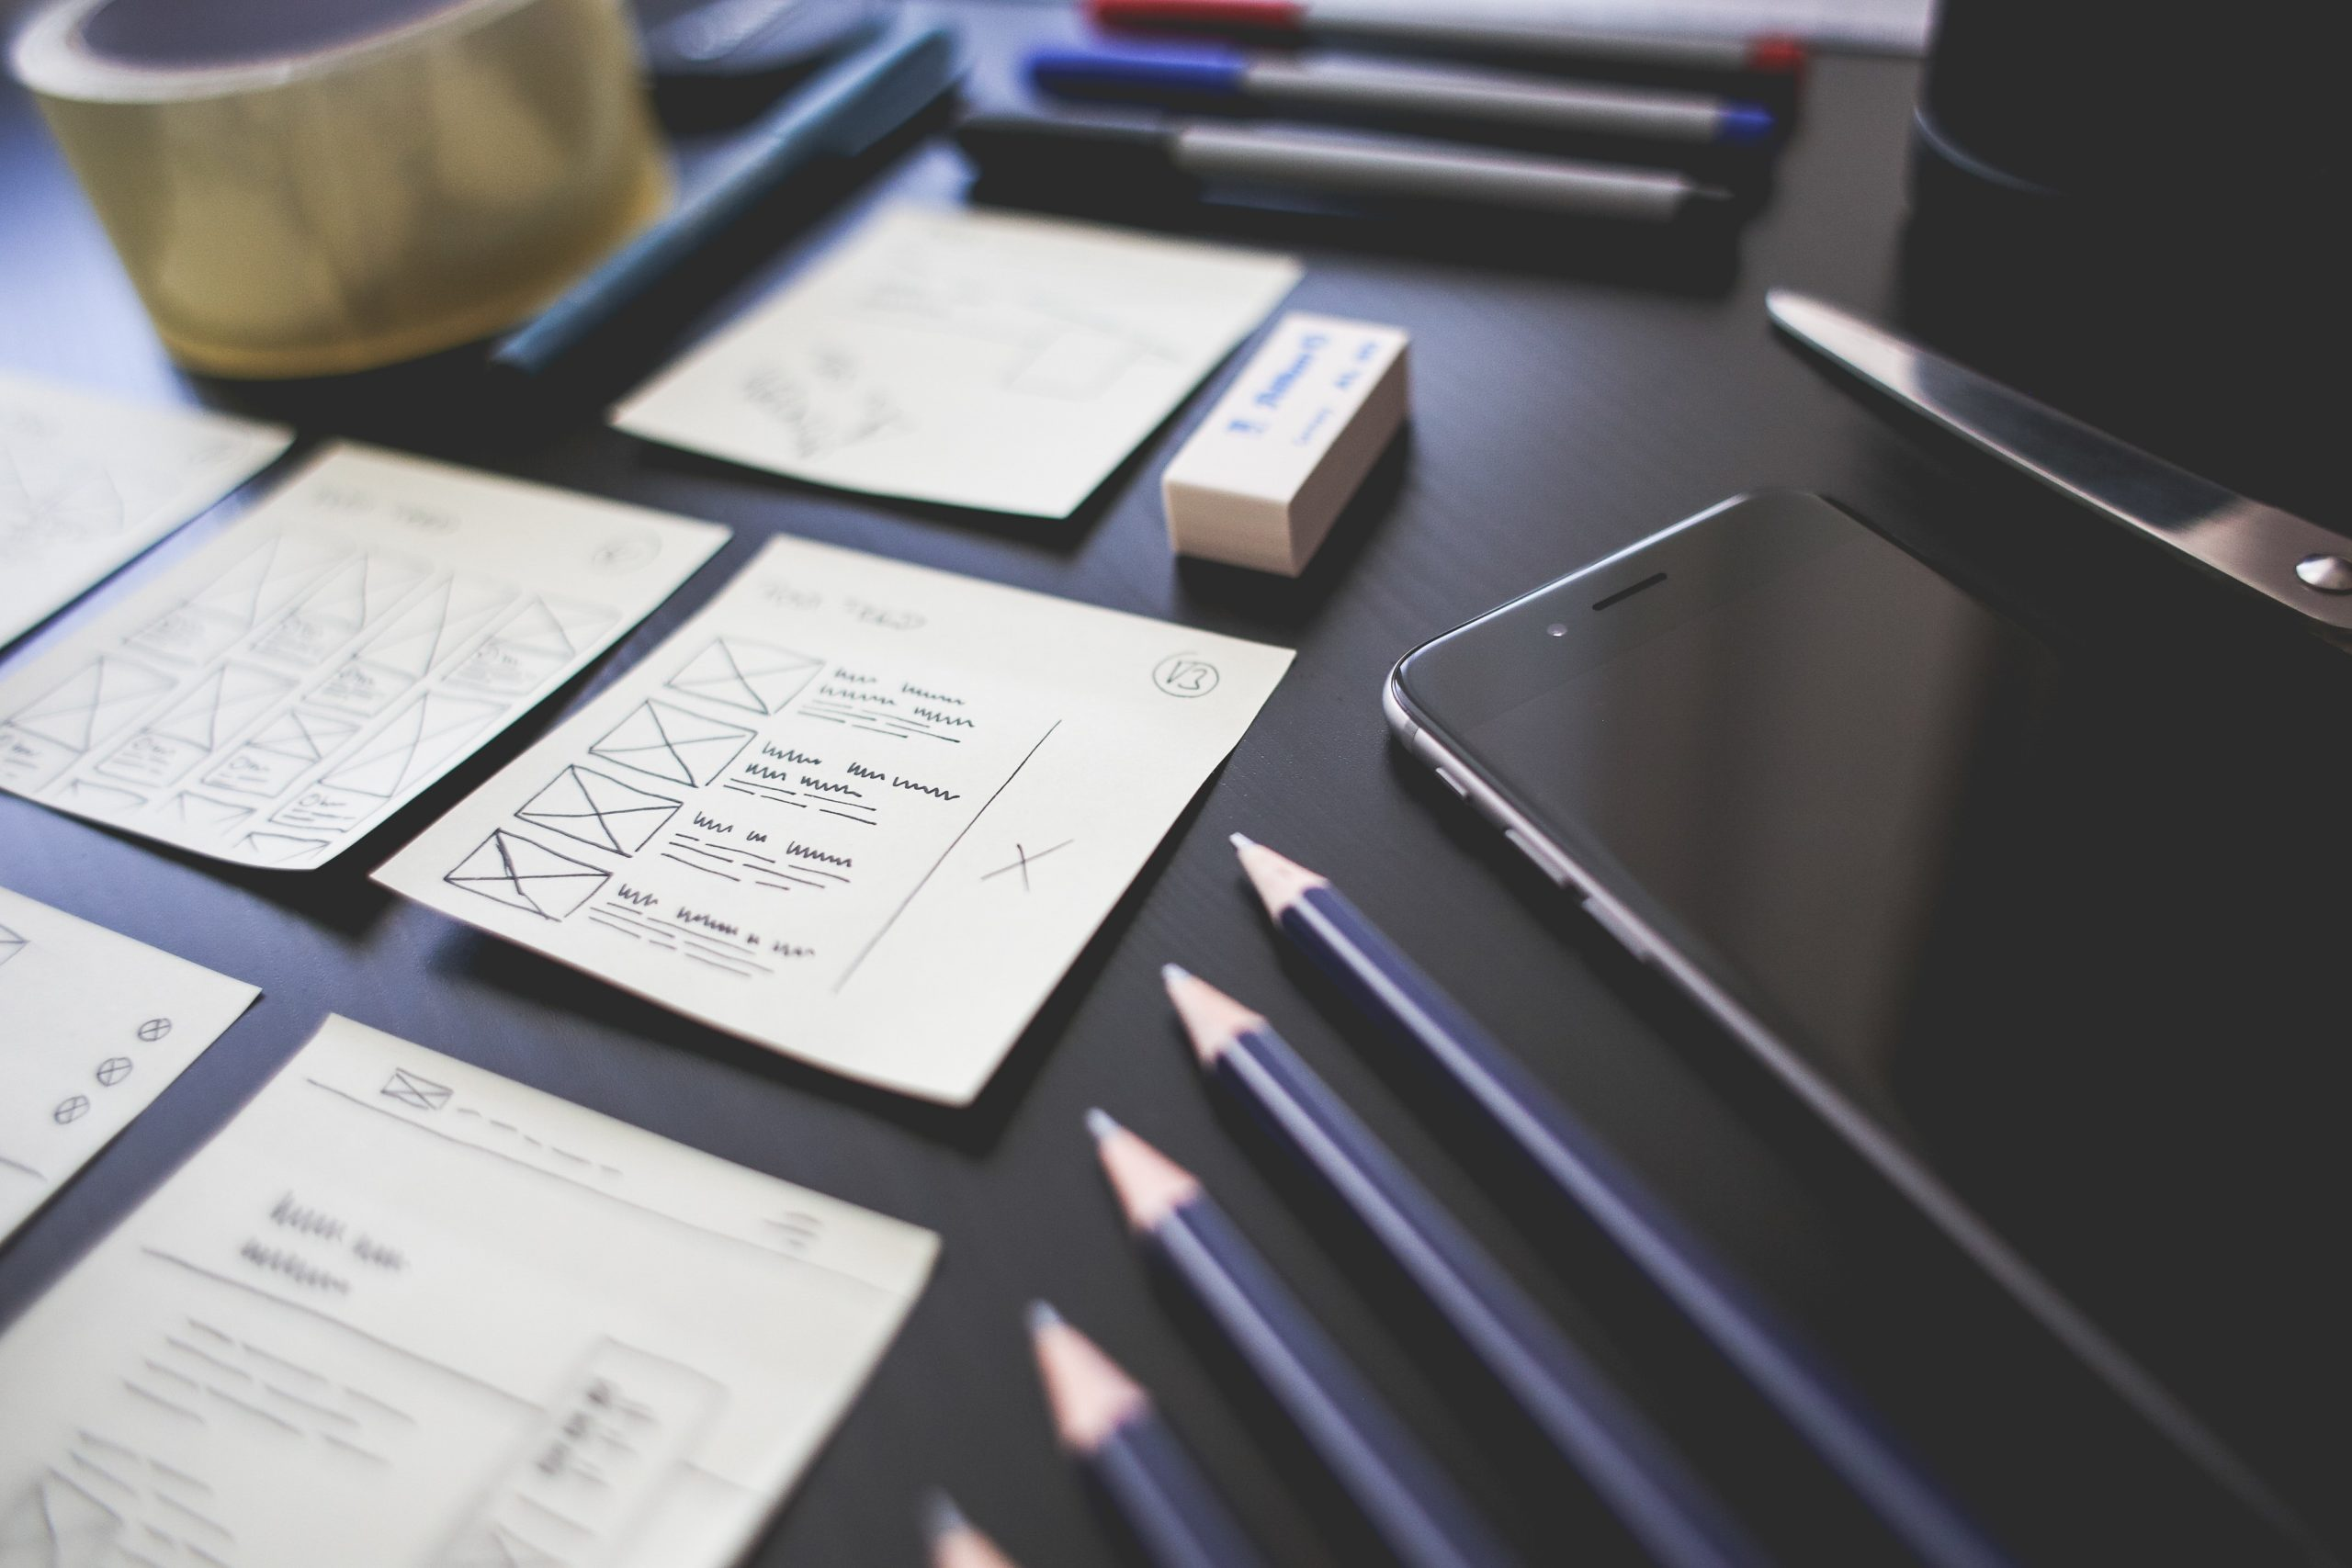 User experience wireframing